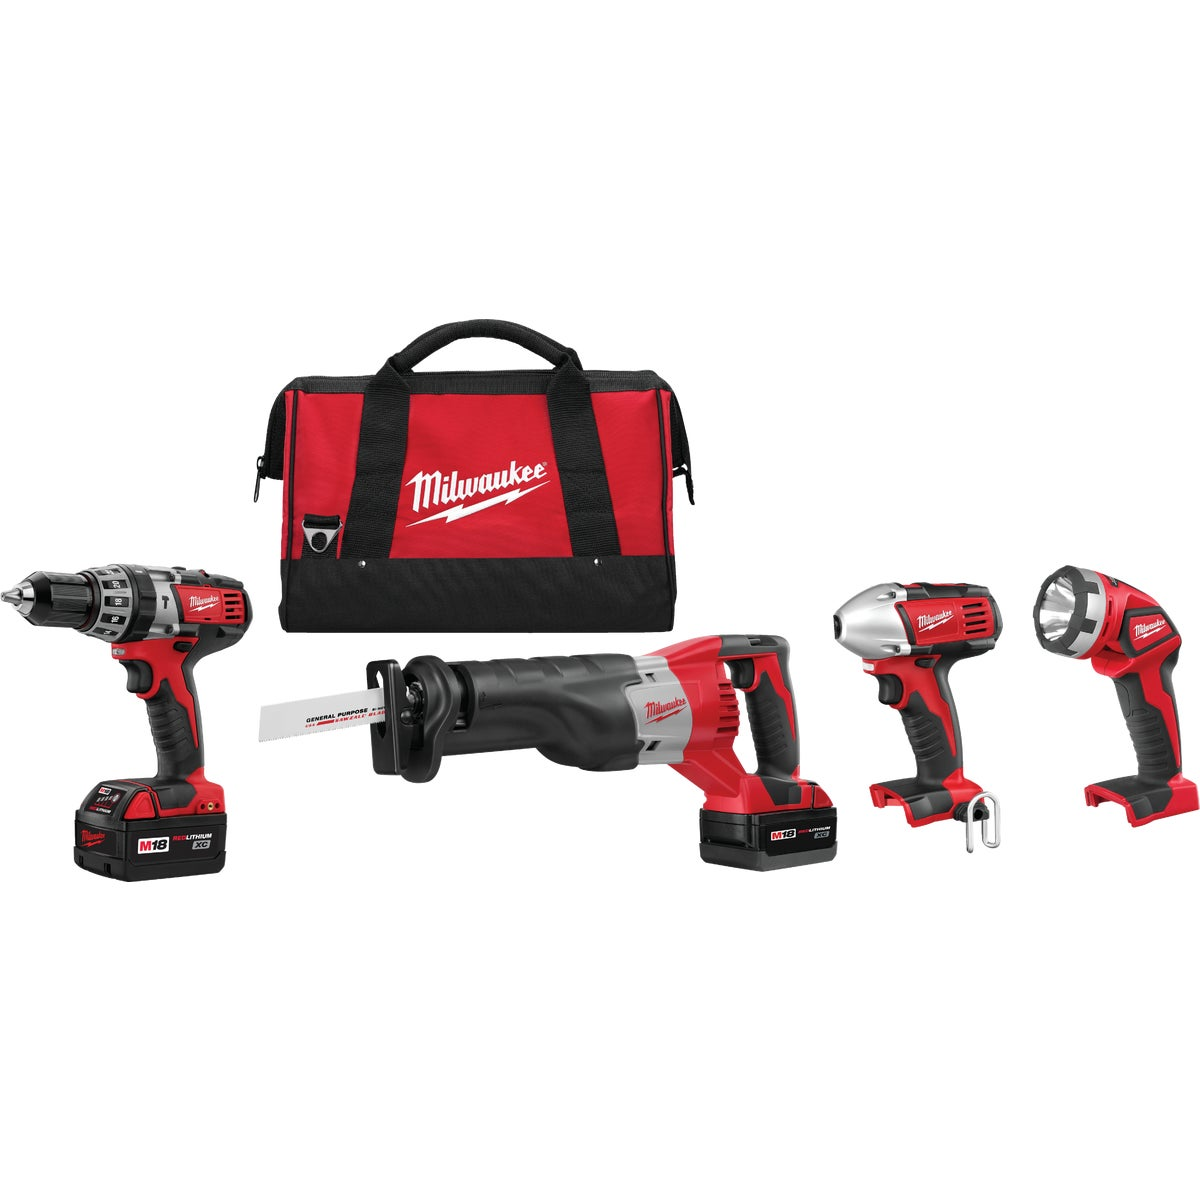 M18 4-TOOL COMBO KIT - 2696-24 by Milwaukee Elec Tool